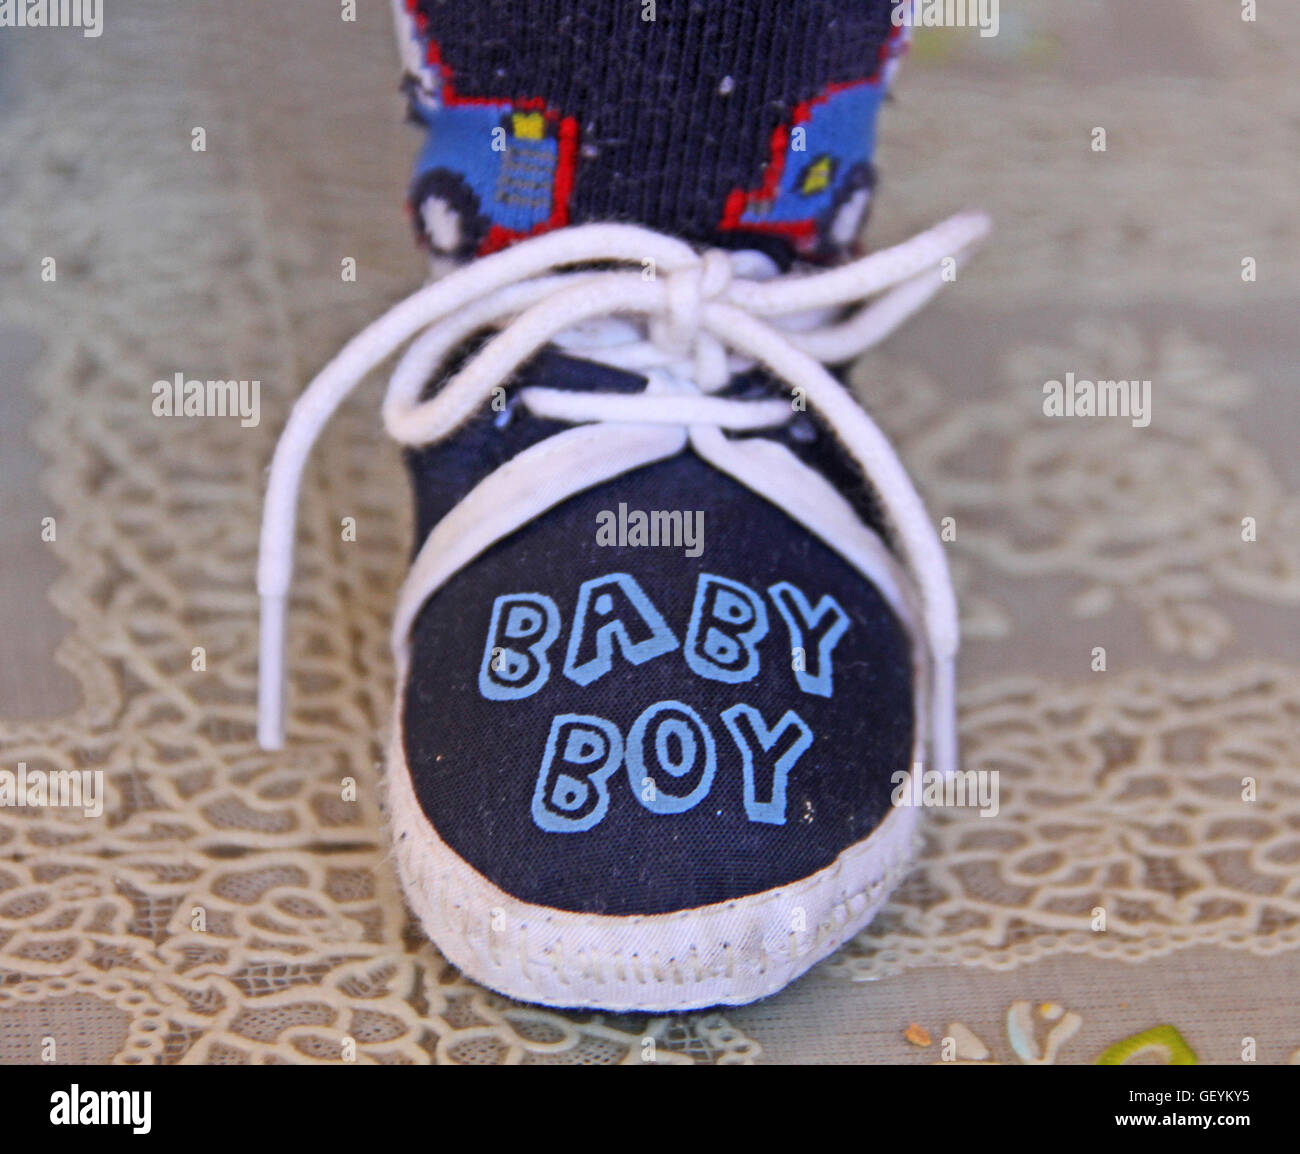 African baby boy's left foot and shoe, Pretoria, South Africa. 2012/12/15 Stock Photo